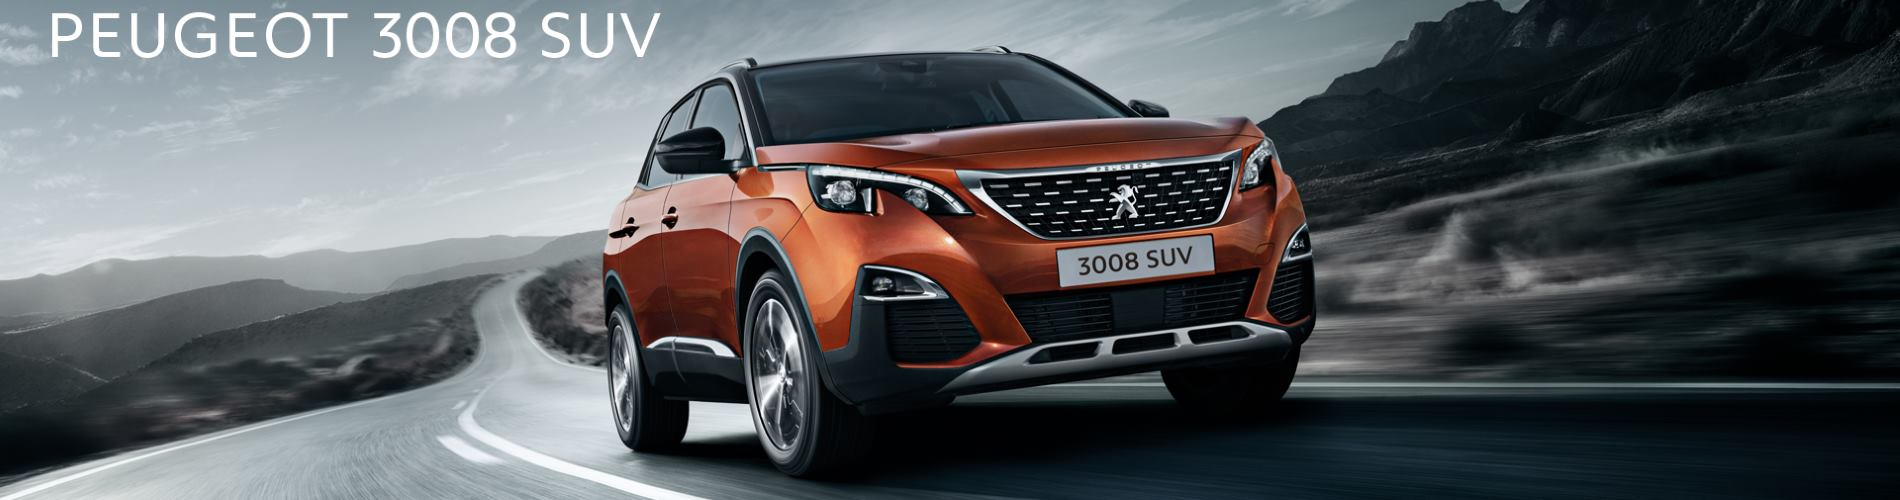 New Peugeot 3008 S U V Offer at Wycliffe Peugeot Rugby